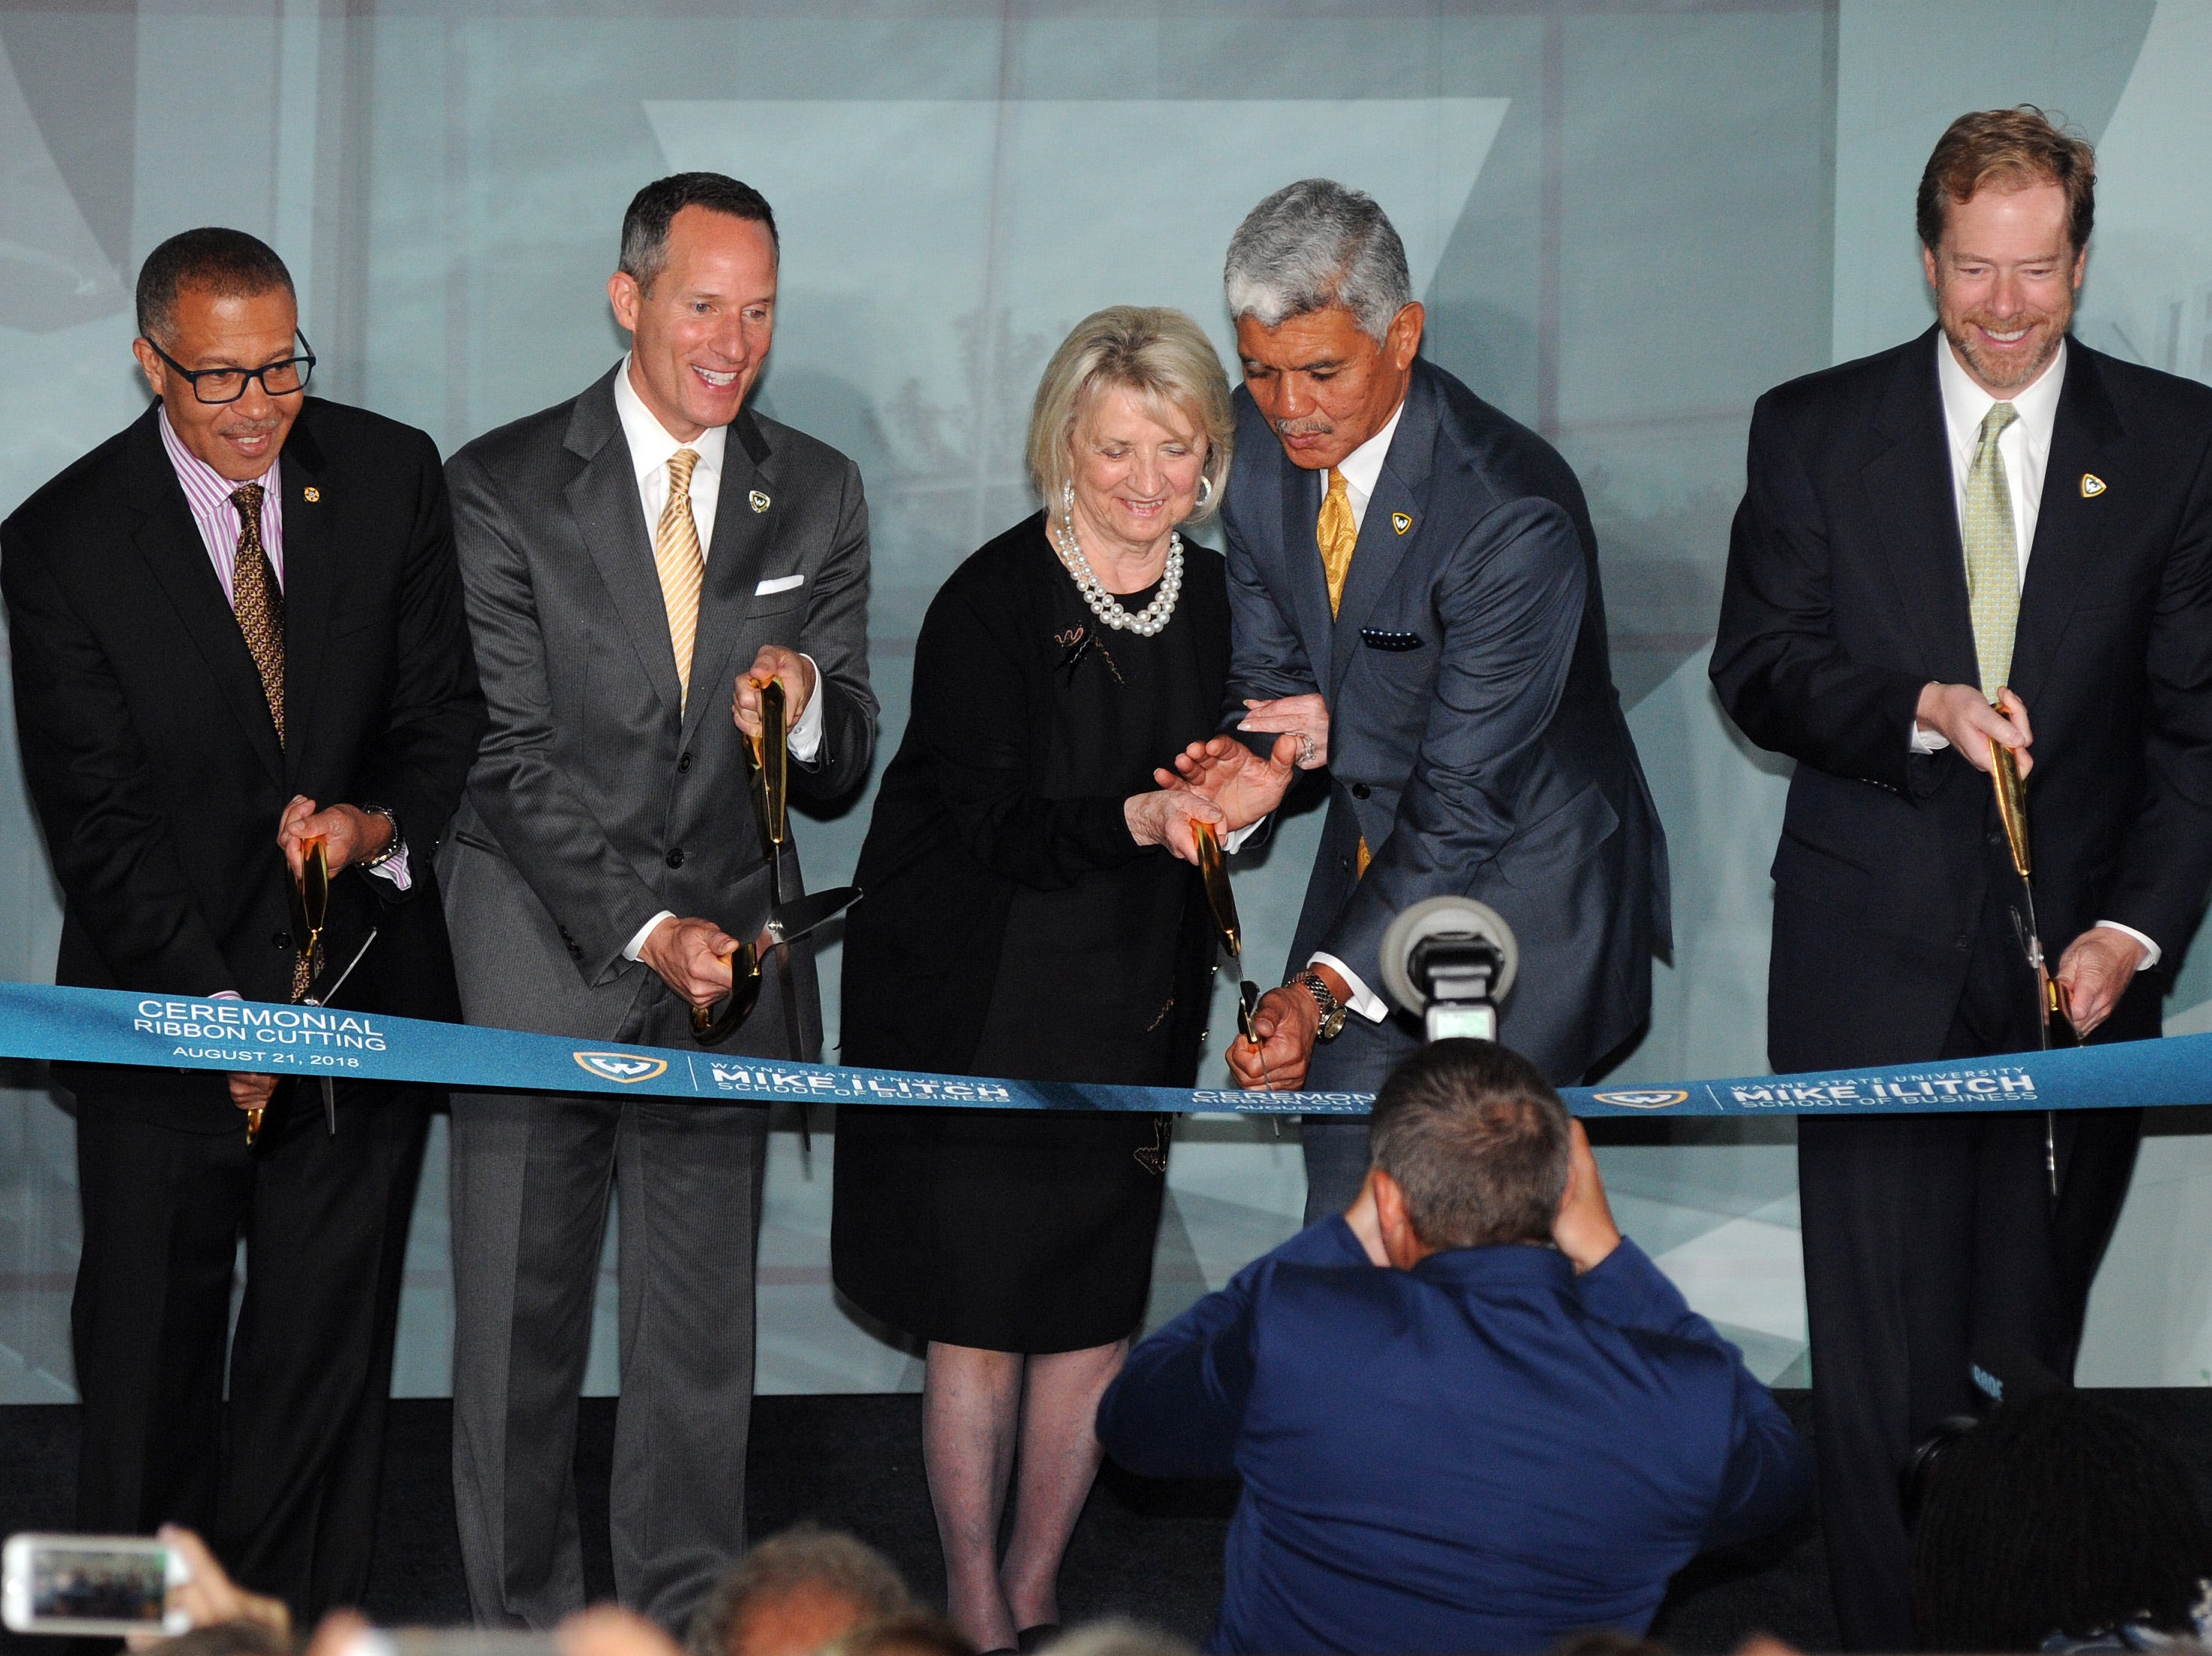 From left, Detroit Police Chief James Craig, Ilitch Holdings President and CEO Christopher Ilitch, Marian Ilitch, WSU President M. Roy Wilson, and WSU Board of Governors Vice Chair David Nicholson were some of the dignitaries involved in the ribbon-cutting ceremony for the new Mike Ilitch School of Business, Tuesday.